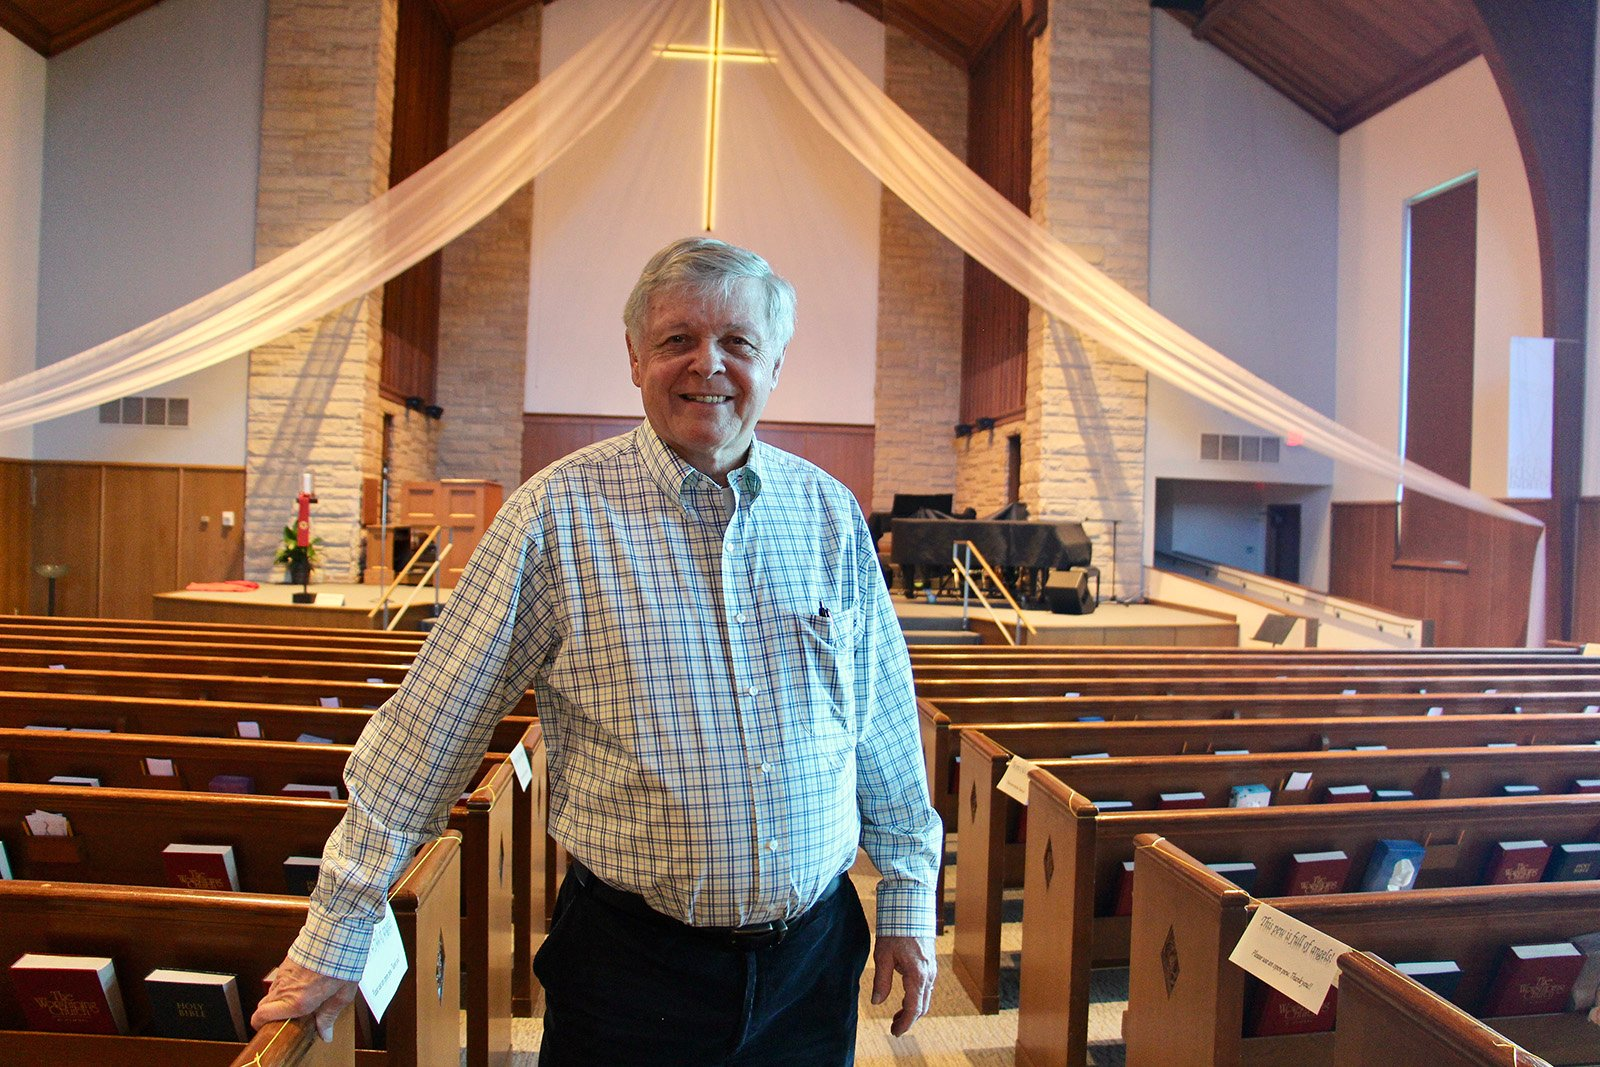 Dave Lubbers, who co-leads the refugee resettlement committee at Fifth Reformed Church, May 18, 2021, at the church in Grand Rapids, Michigan. RNS photos by Emily McFarlan Miller